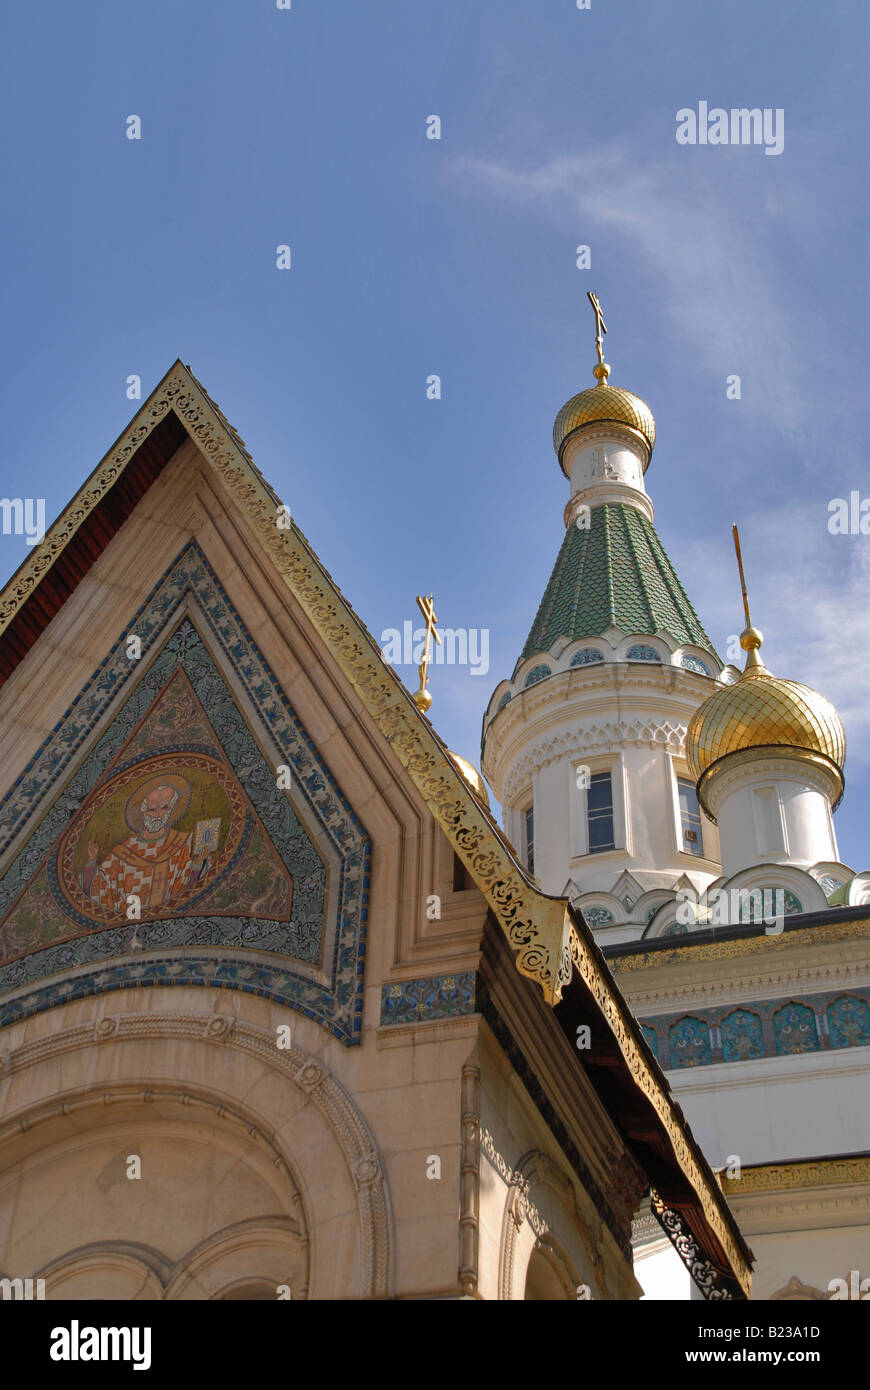 The beautiful Russian Church in the centre of Sofia, Bulgaria. - Stock Image